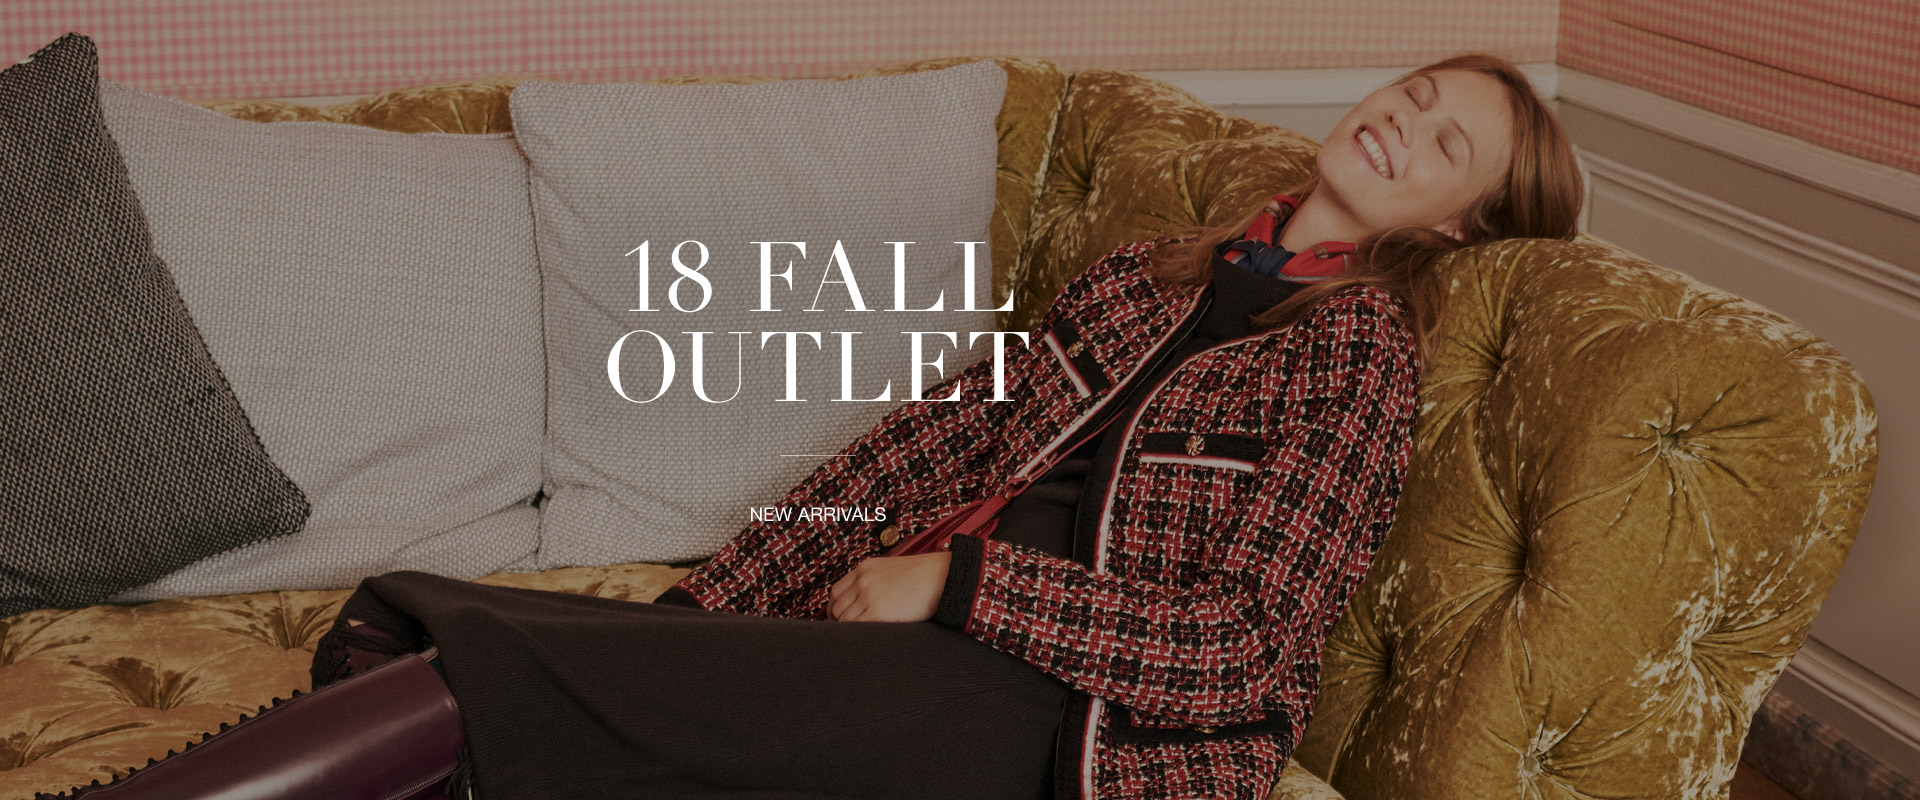 18 FALL OUTLET